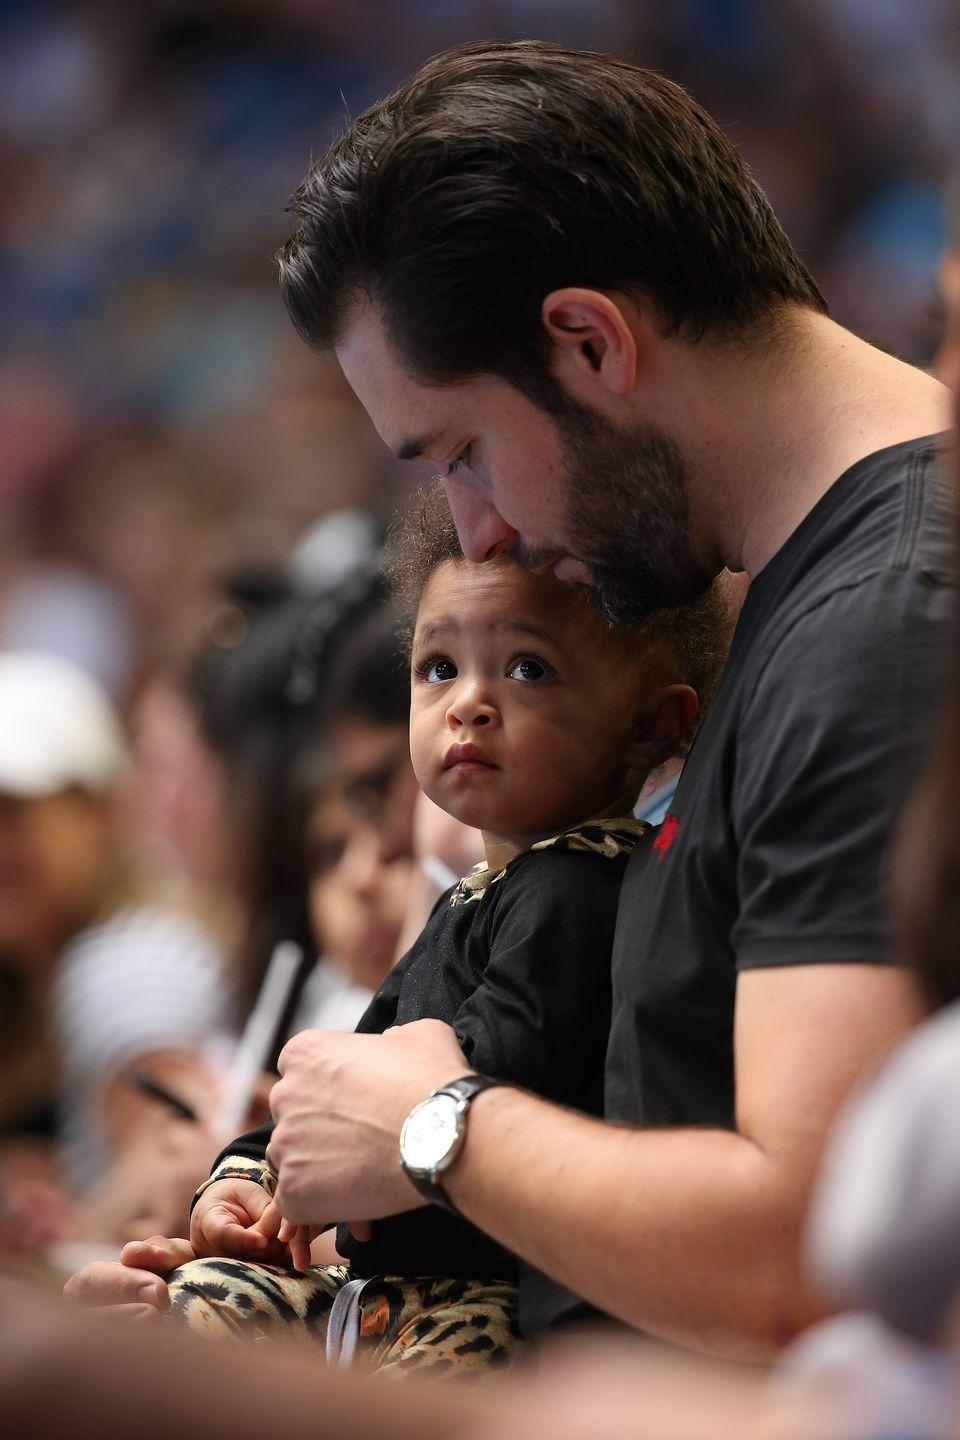 """<p><strong>Children</strong>: Alexis Olympia Ohanian Jr. (2)</p><p>Dad of the year award might go to the reddit co-founder, who recently <a href=""""https://www.instagram.com/p/CBD1lm4HPdi/?utm_source=ig_embed"""" rel=""""nofollow noopener"""" target=""""_blank"""" data-ylk=""""slk:stepped down from the company's board"""" class=""""link rapid-noclick-resp"""">stepped down from the company's board</a> to make room for a Black person to join, and previously <a href=""""https://www.oprahmag.com/entertainment/a28687396/alexis-ohanian-serena-williams-paternity-leave/"""" rel=""""nofollow noopener"""" target=""""_blank"""" data-ylk=""""slk:encouraged other fathers to take paternity leave"""" class=""""link rapid-noclick-resp"""">encouraged other fathers to take paternity leave</a> if they can. Plus, <a href=""""https://www.oprahmag.com/life/relationships-love/a25132106/serena-williams-alexis-ohanian-cutest-moments/"""" rel=""""nofollow noopener"""" target=""""_blank"""" data-ylk=""""slk:he and his wife Serena Williams are just the cutest"""" class=""""link rapid-noclick-resp"""">he and his wife Serena Williams are just the cutest</a>.</p>"""